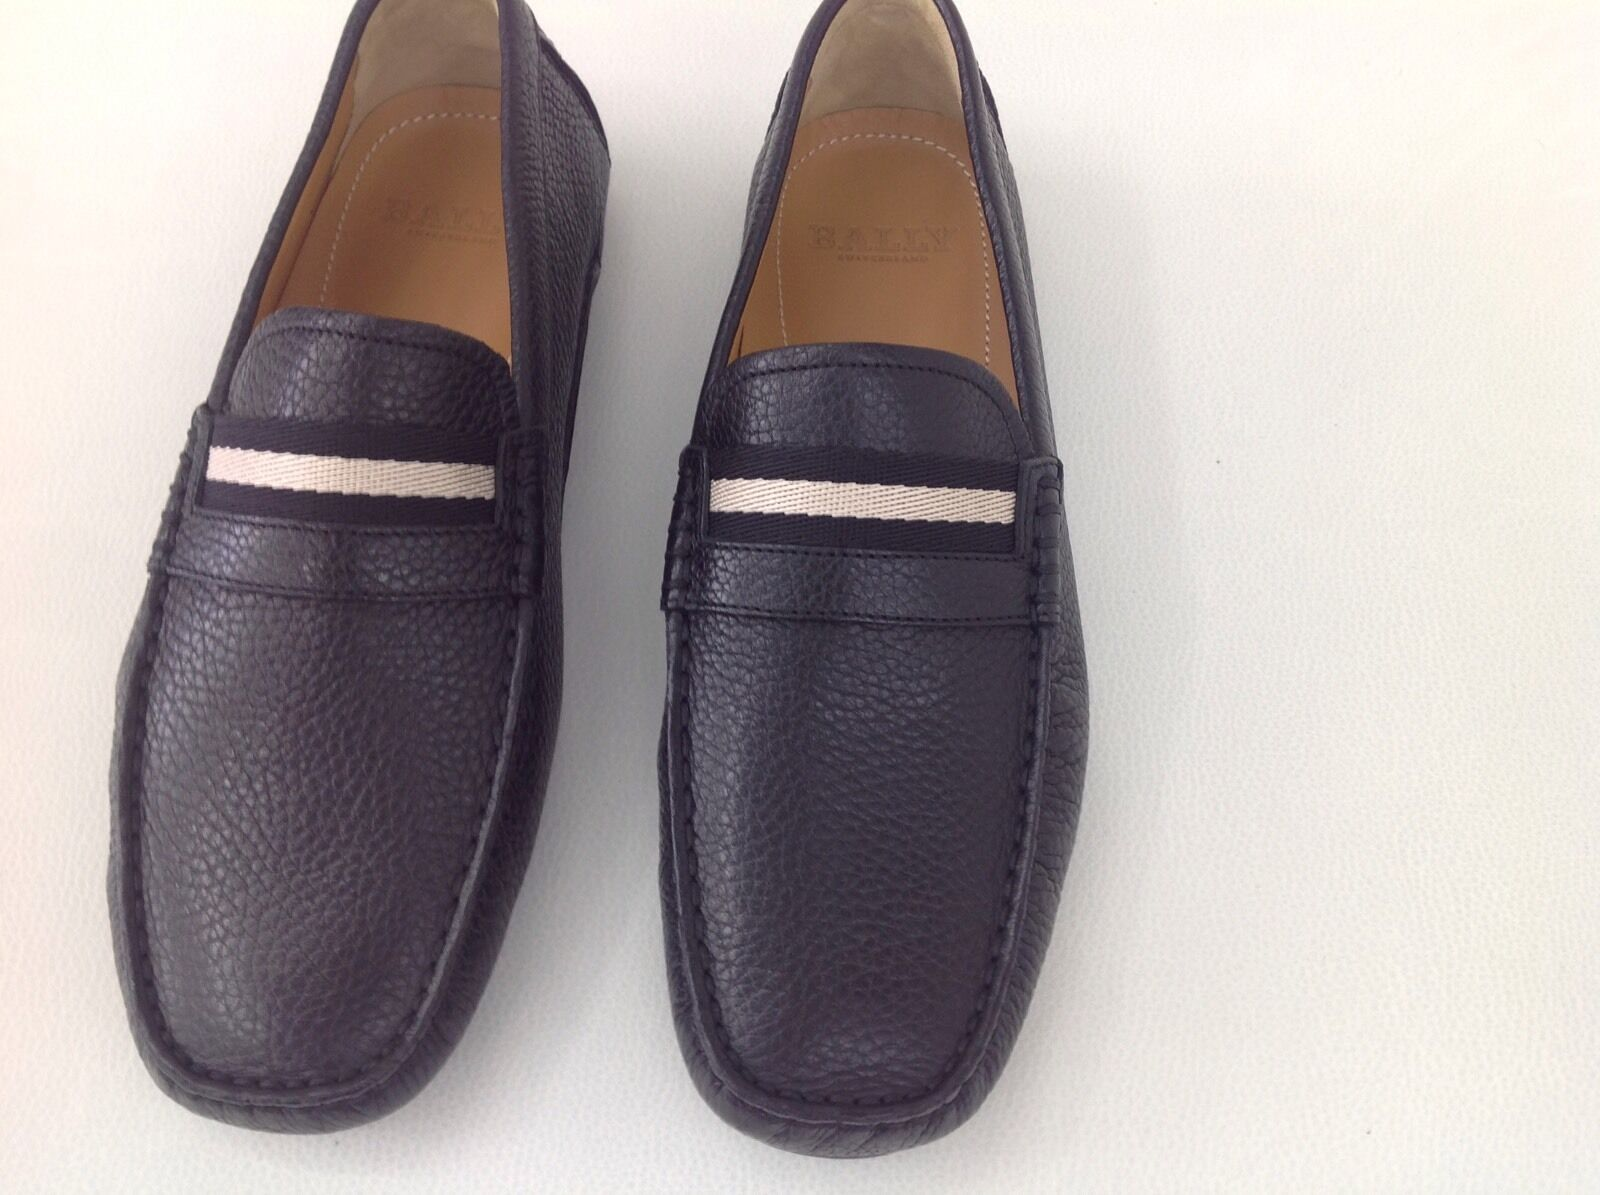 NEW IN ORIGINAL BOX BOX BOX BALLY SWITZERLAND DRIVERS GRAINED BROWN  SHOES SIZE US 8. 628ea7